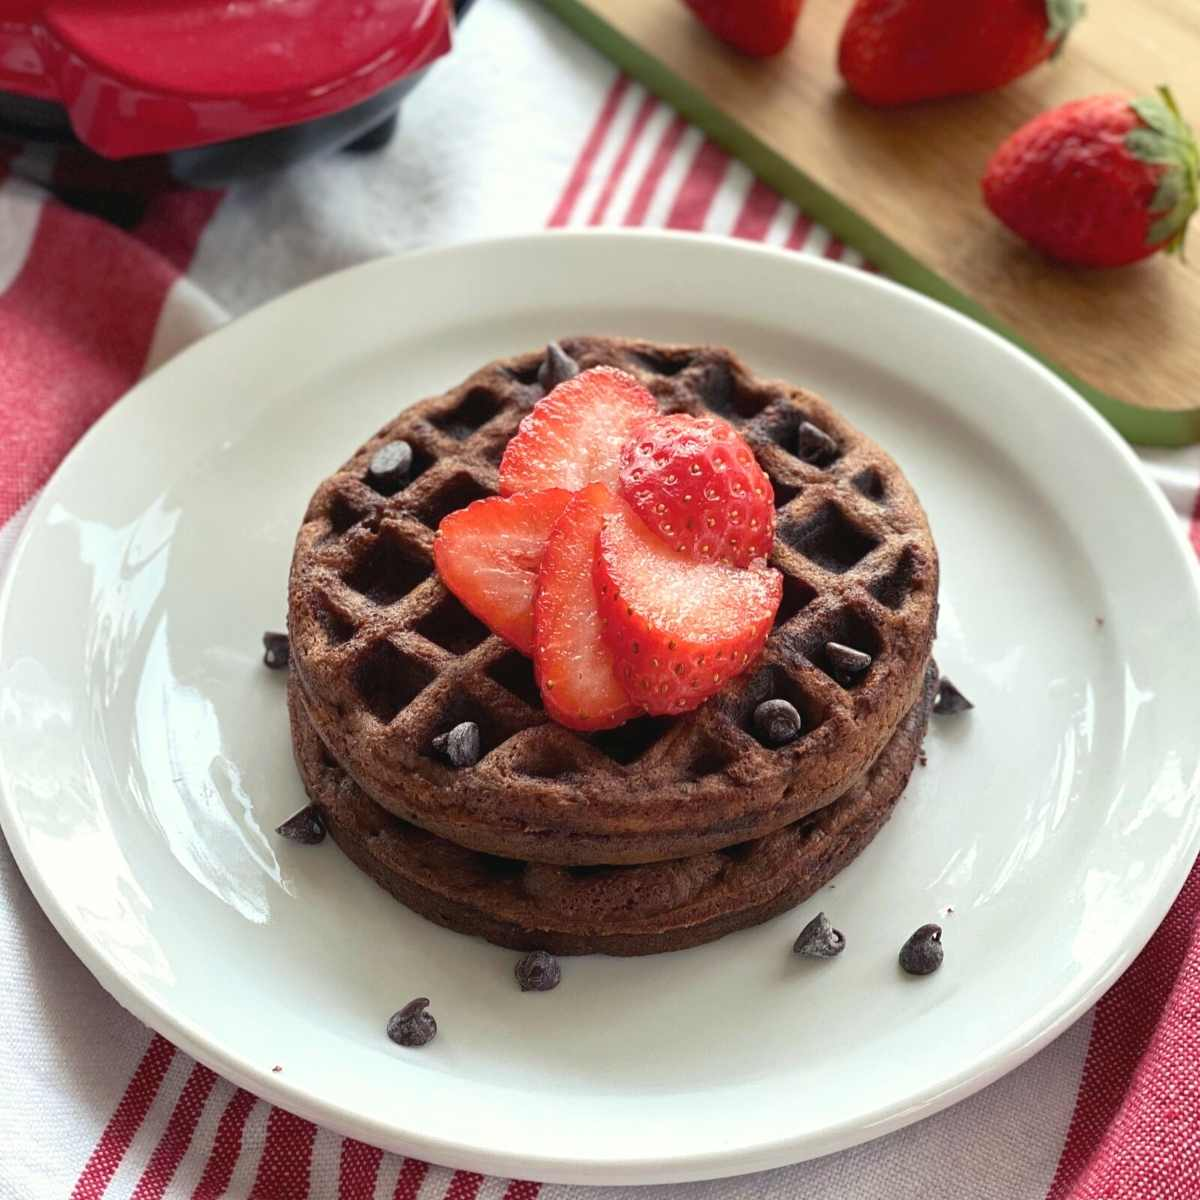 2 chocolate chaffles on a plate with strawberries and chocolate chips on top and a Dash waffle iron behind them.